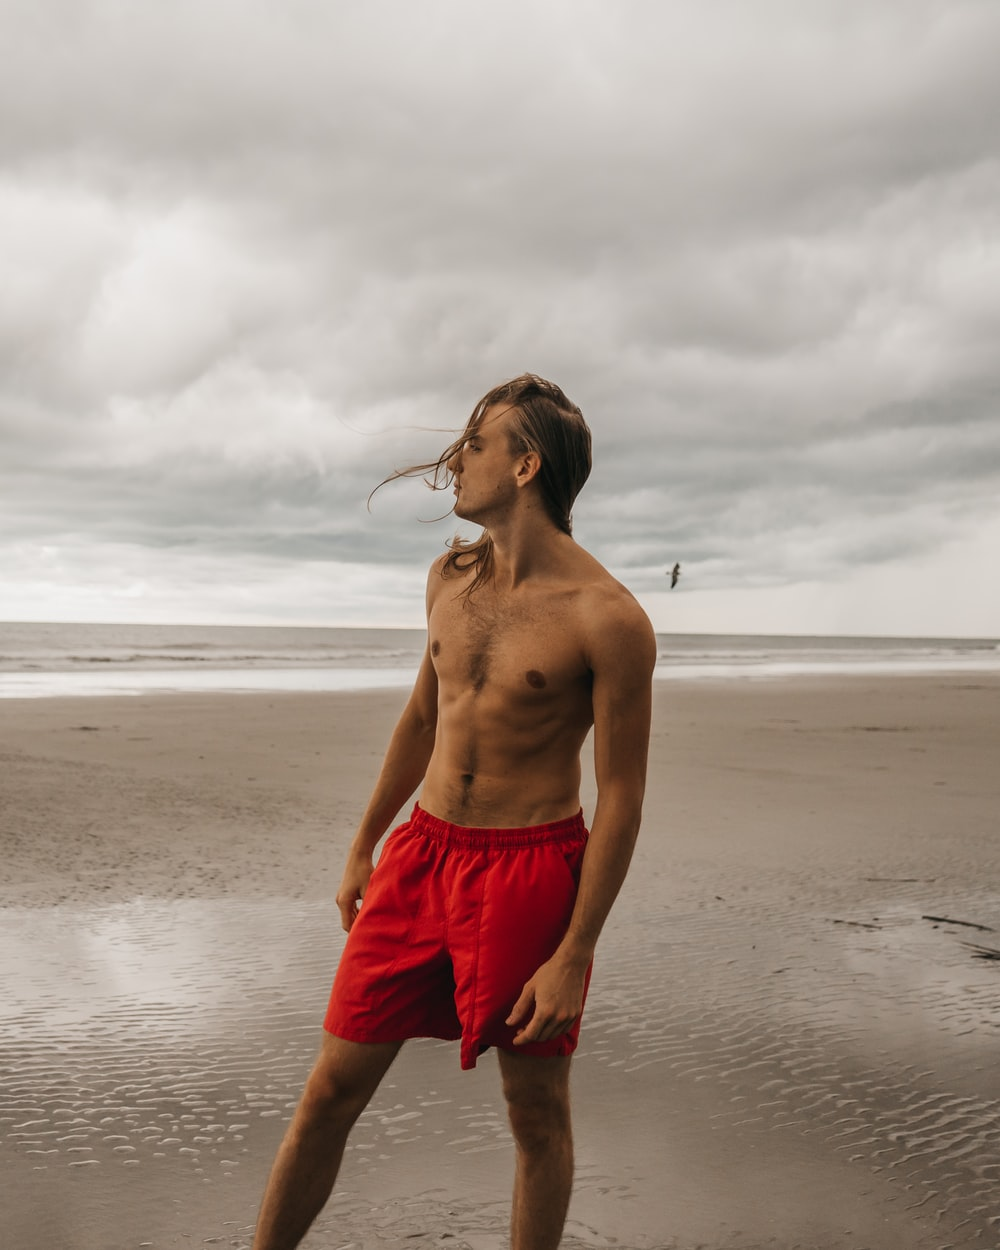 man in red shorts standing on seashore during daytime